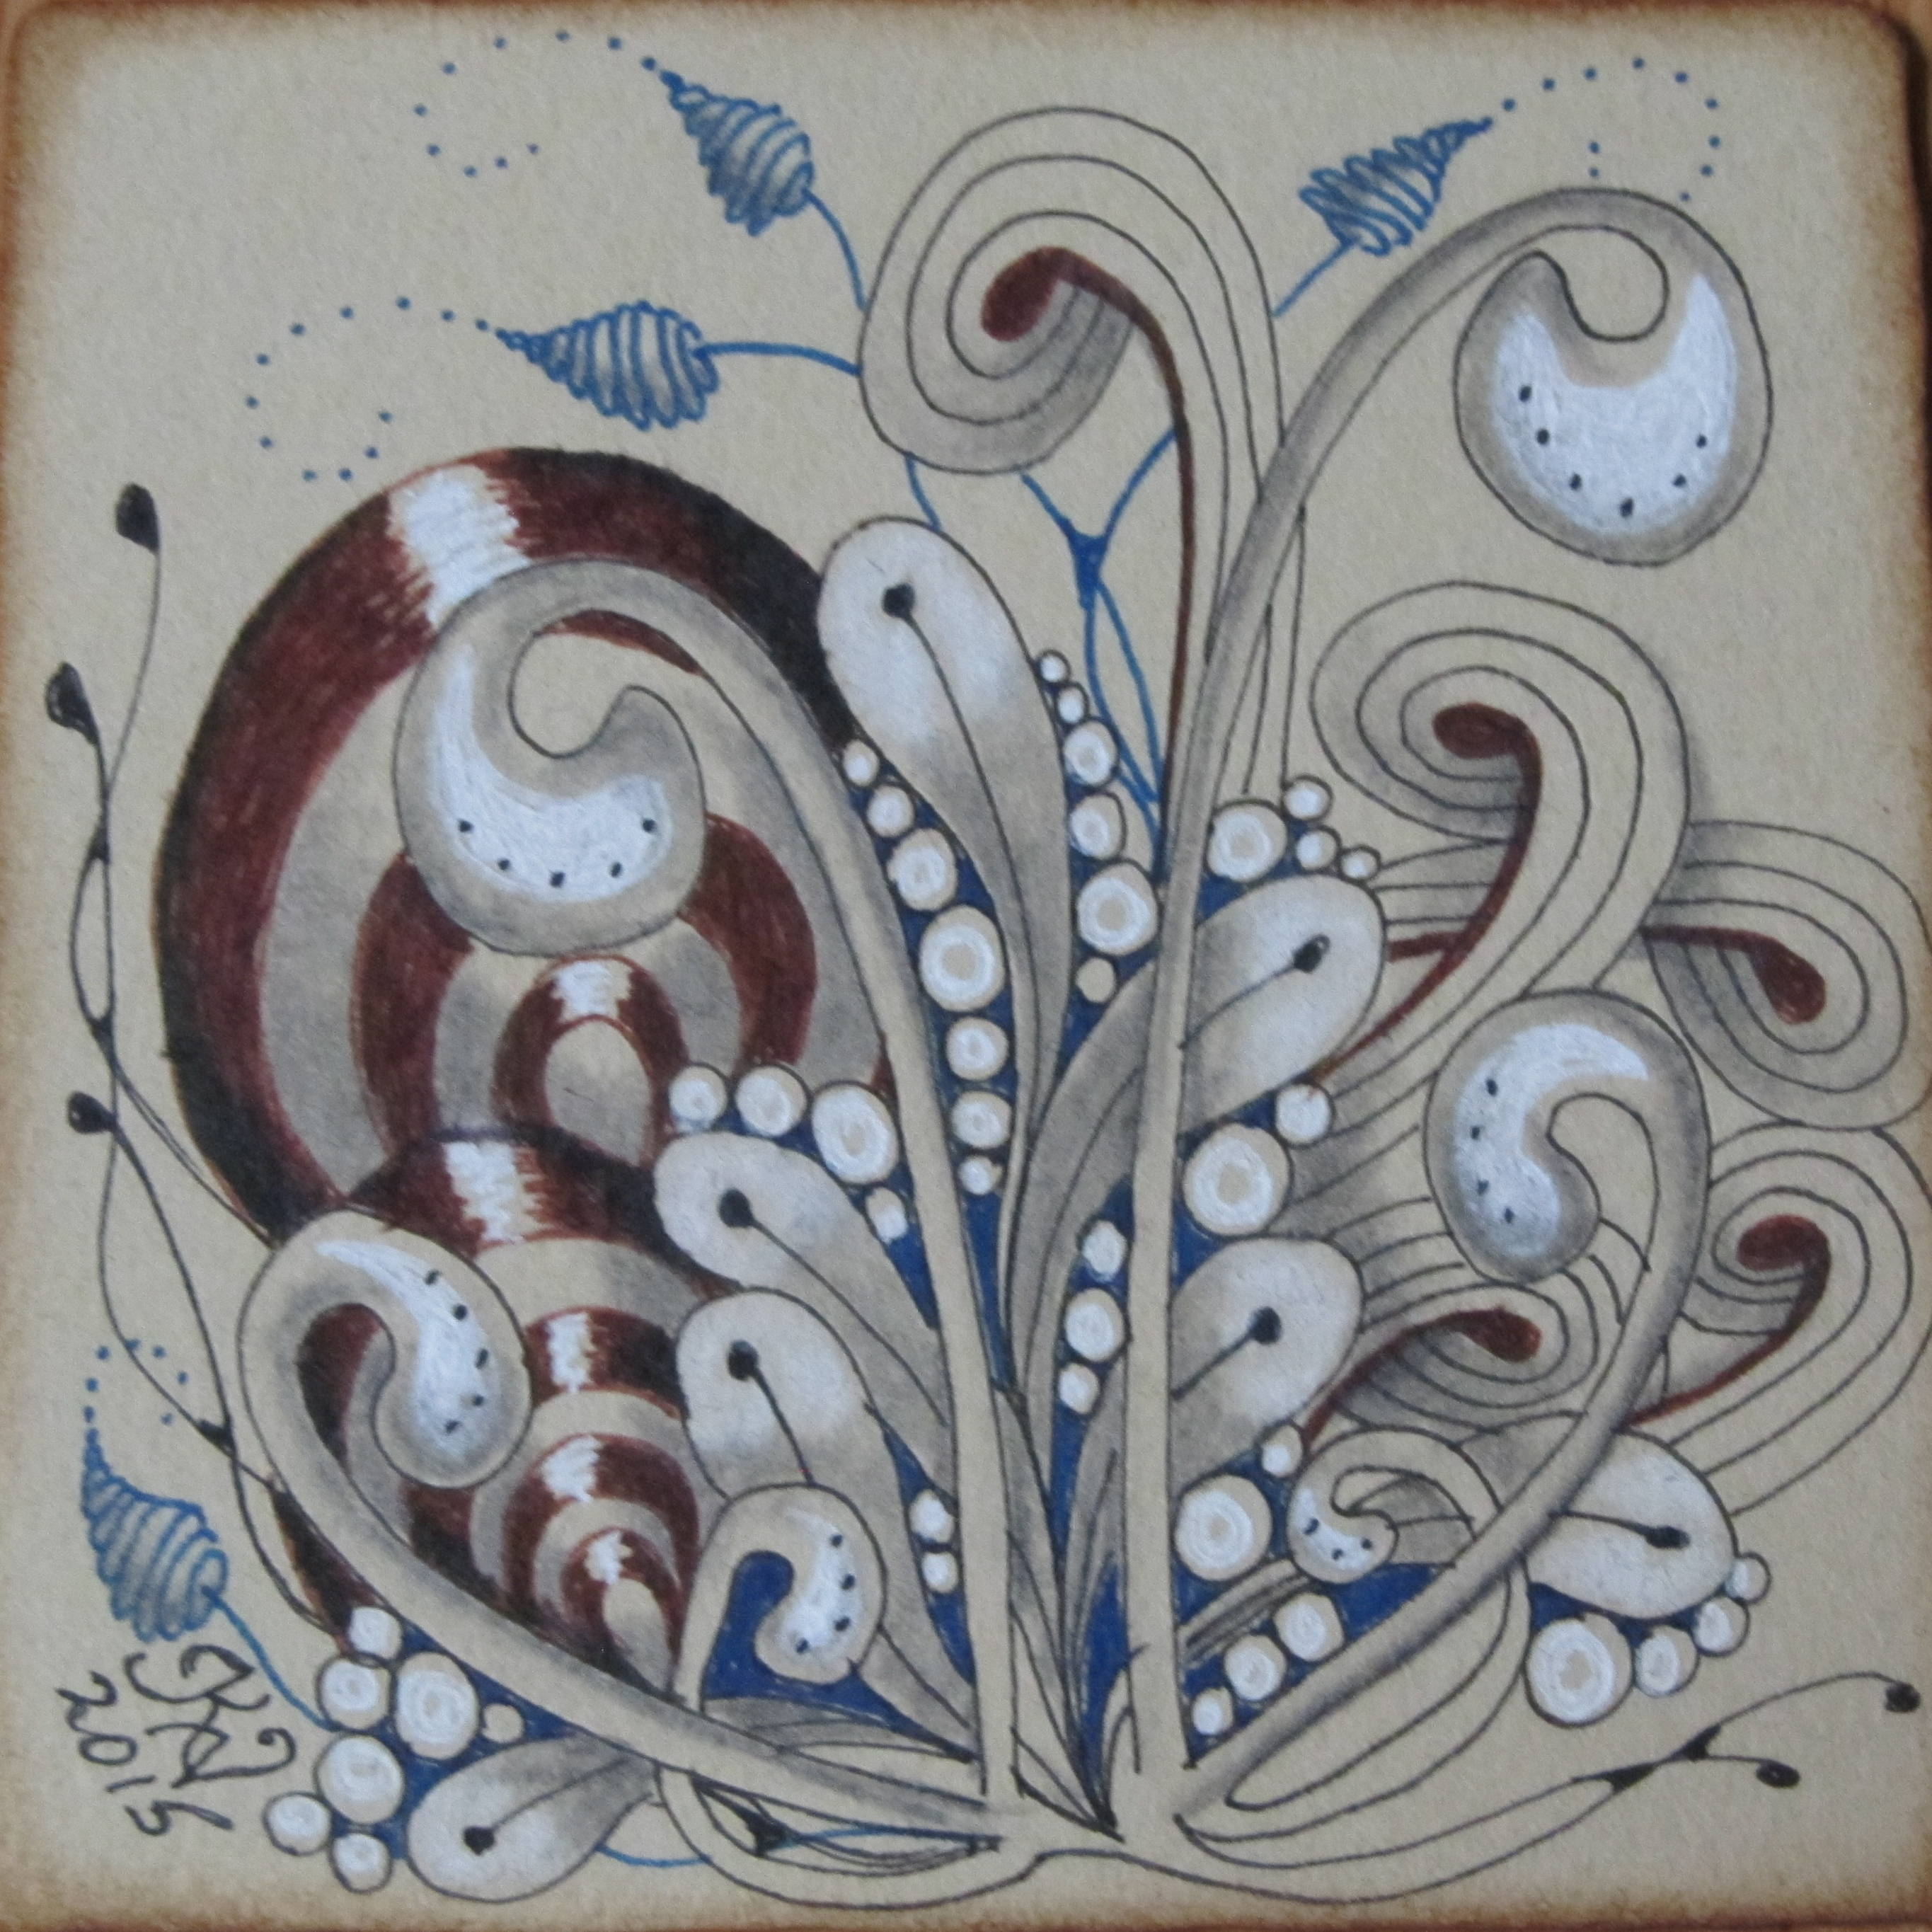 Renaissance Tan tile with blue